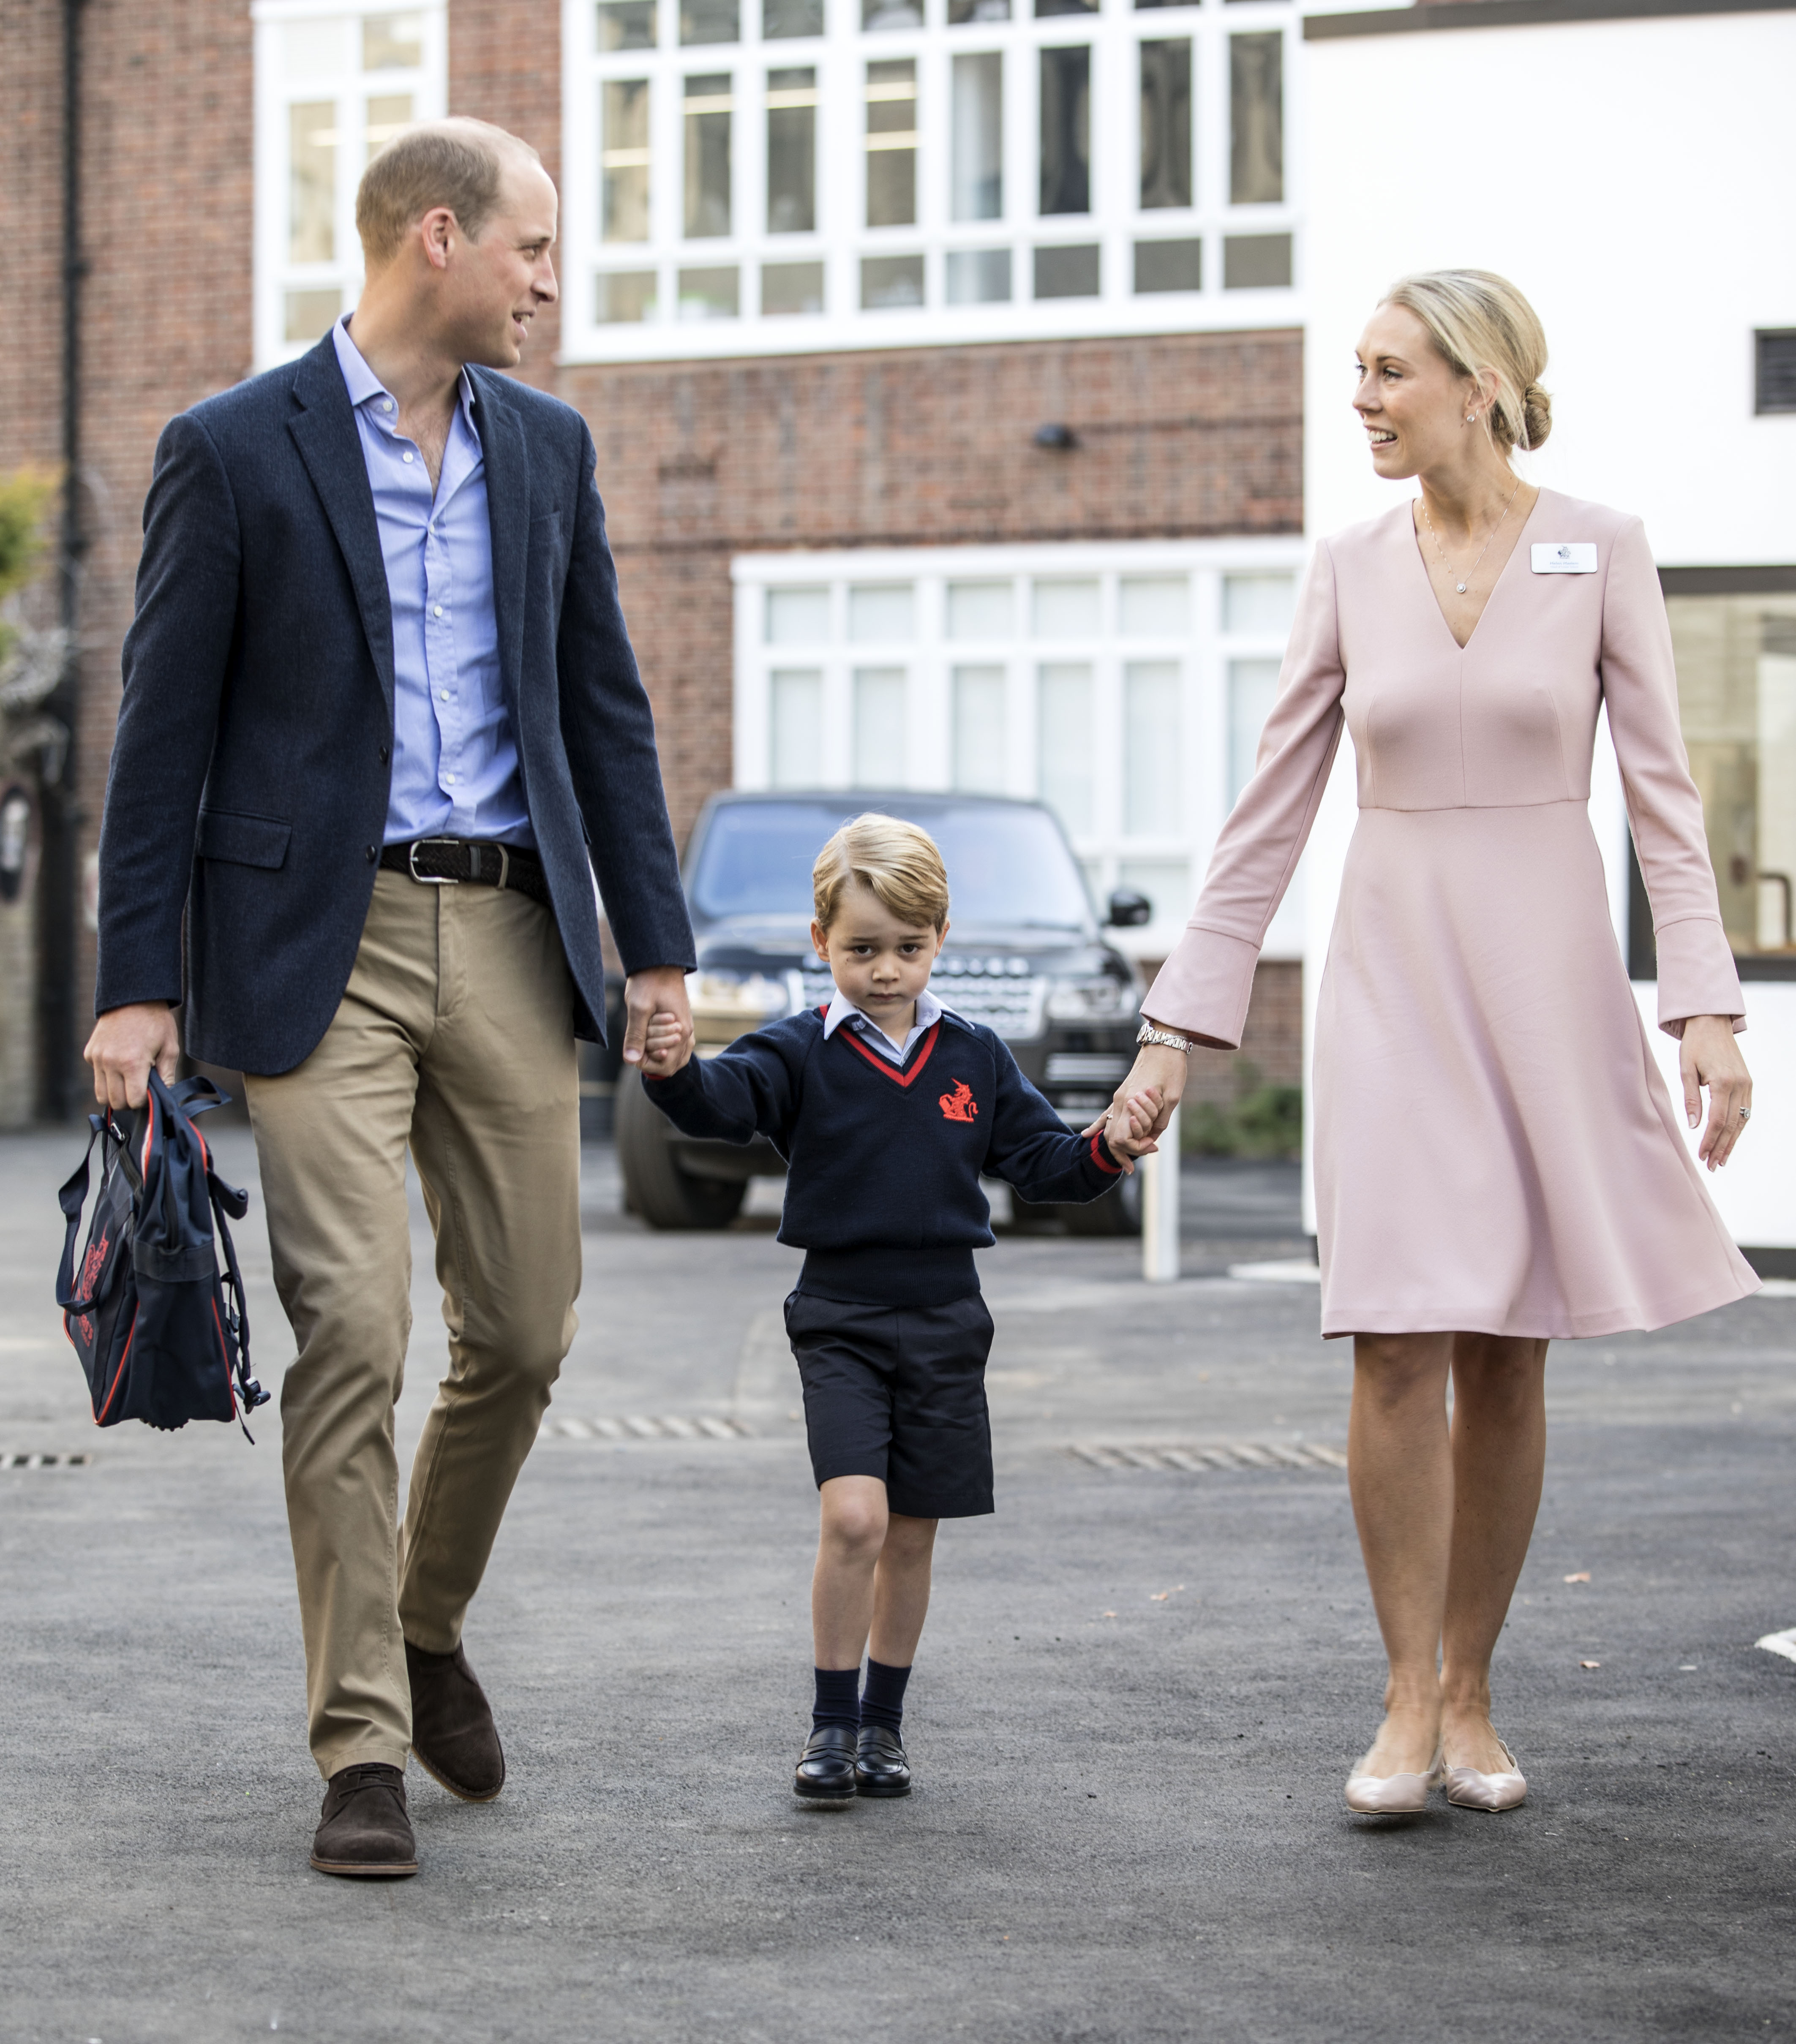 Prince George's first day at Thomas's Battersea 'went well' says Prince William